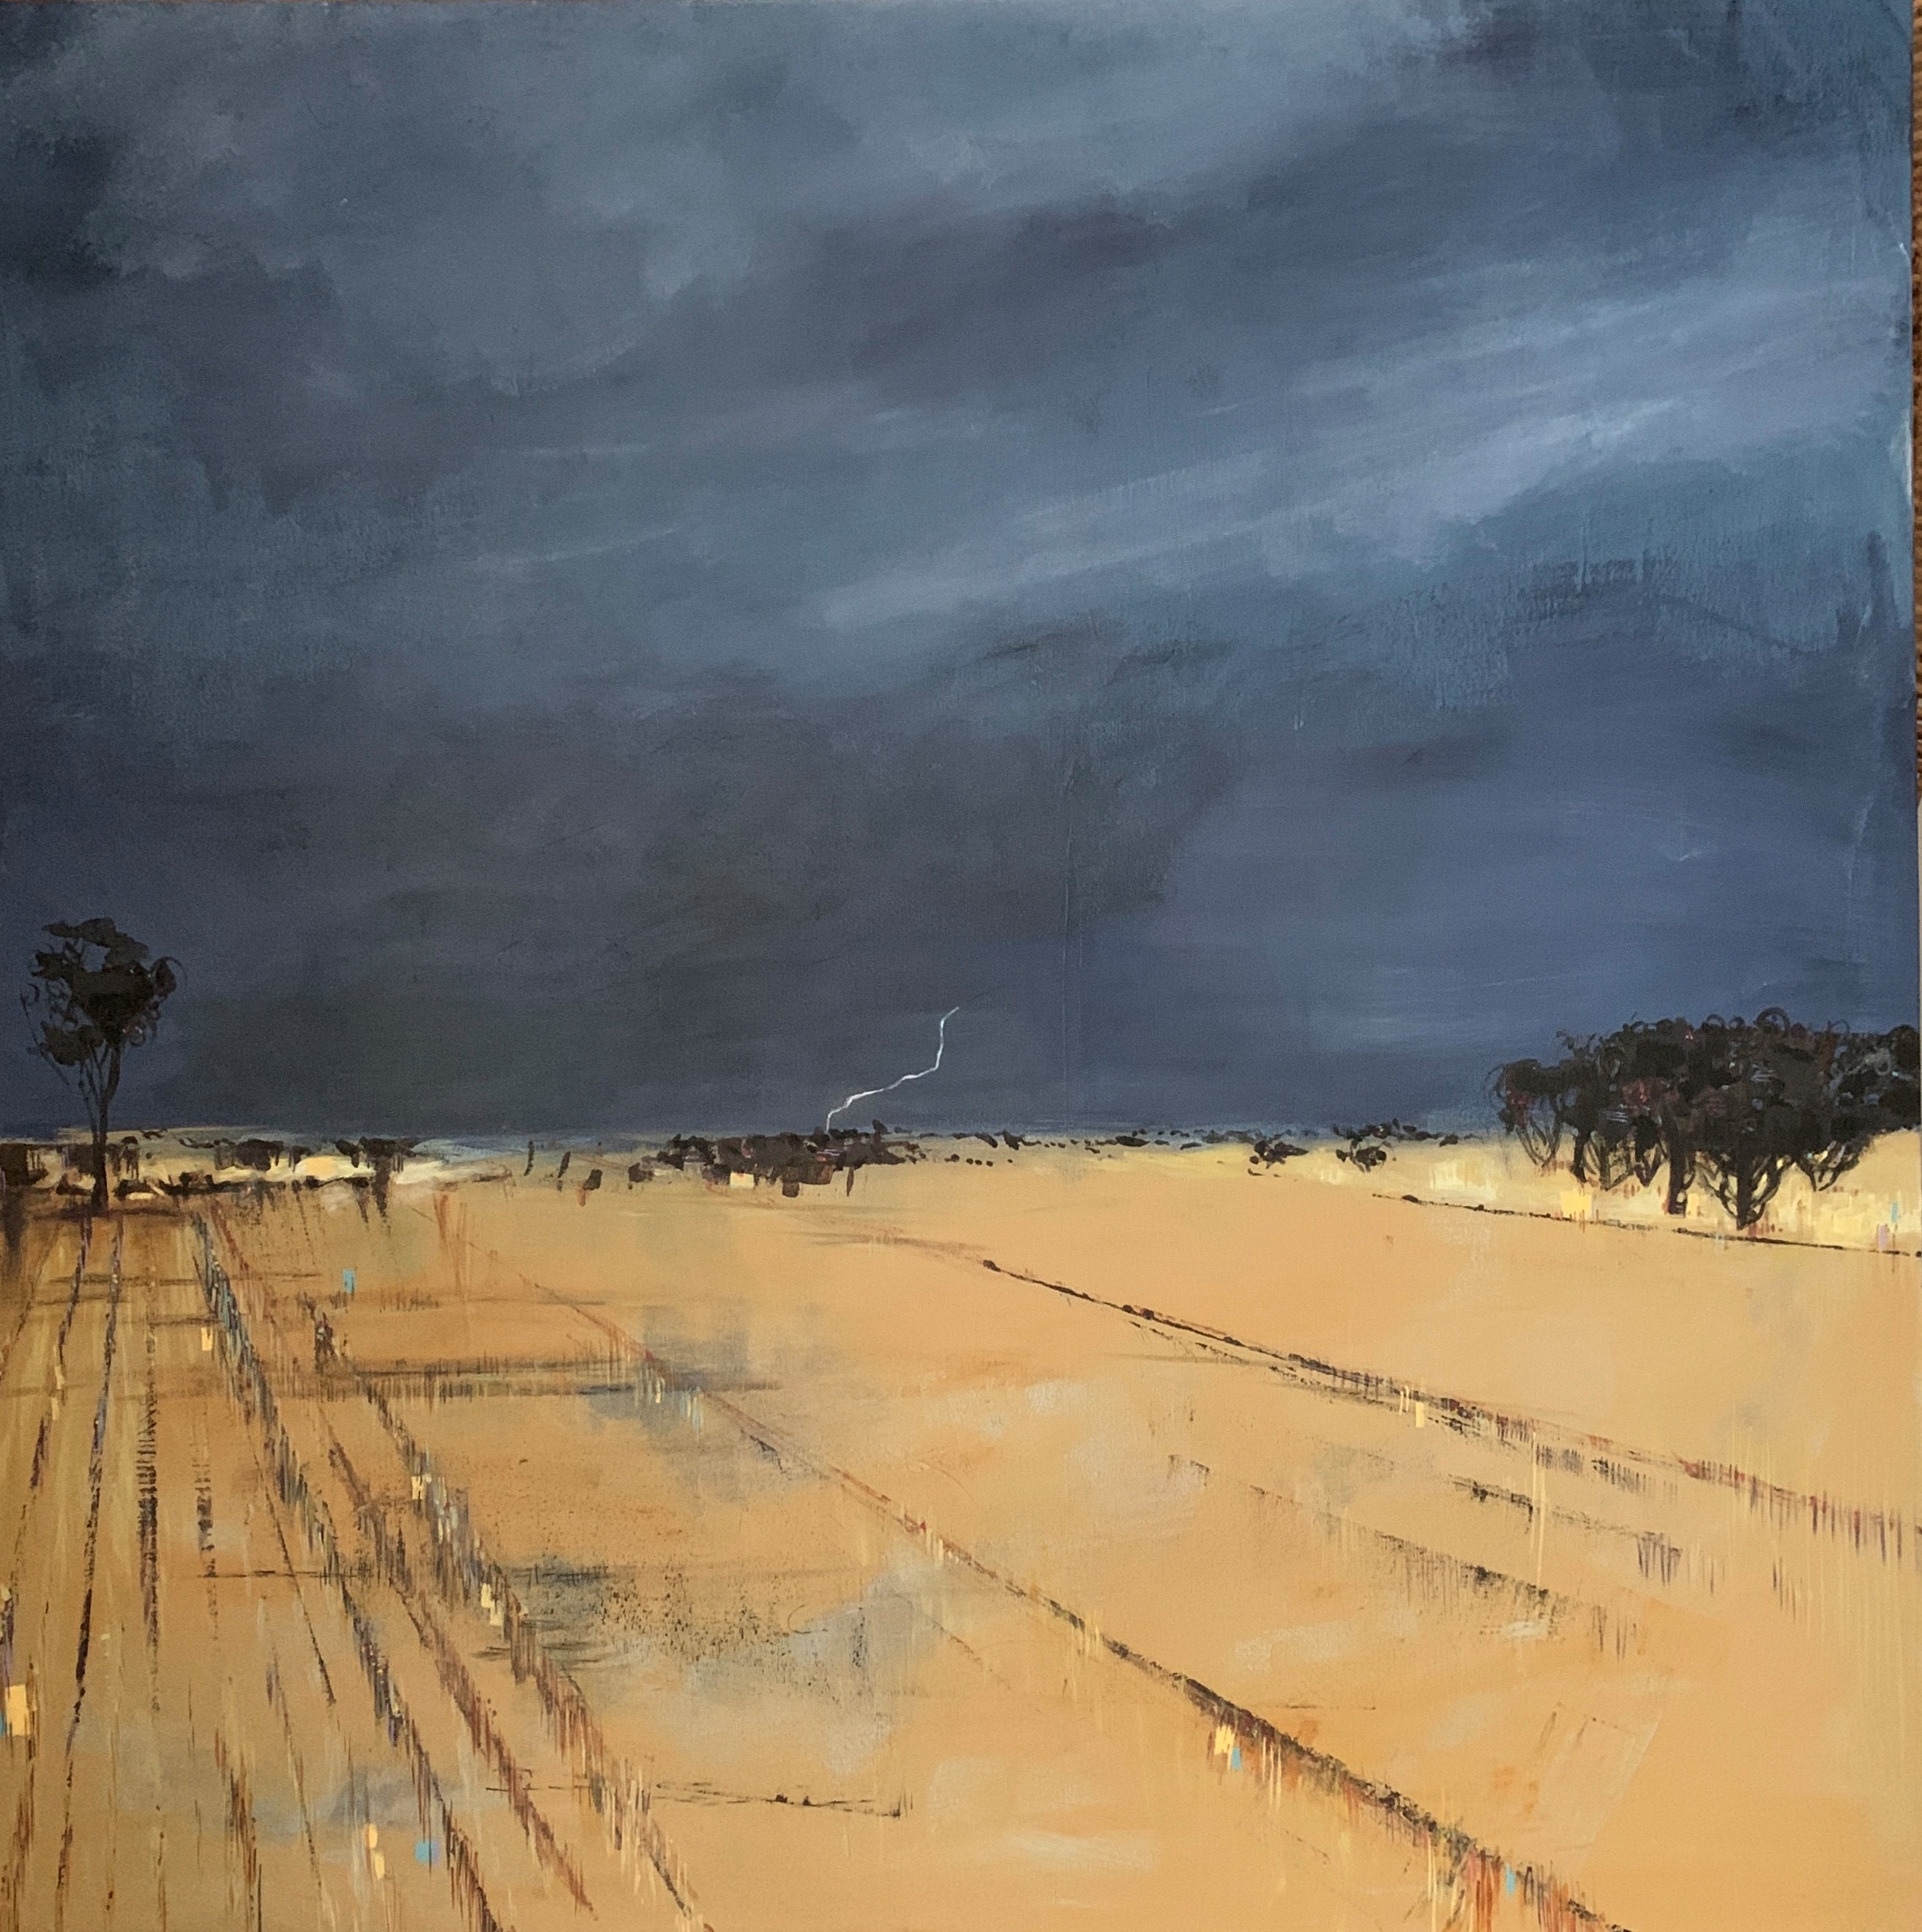 Storm over the Wheatbelt